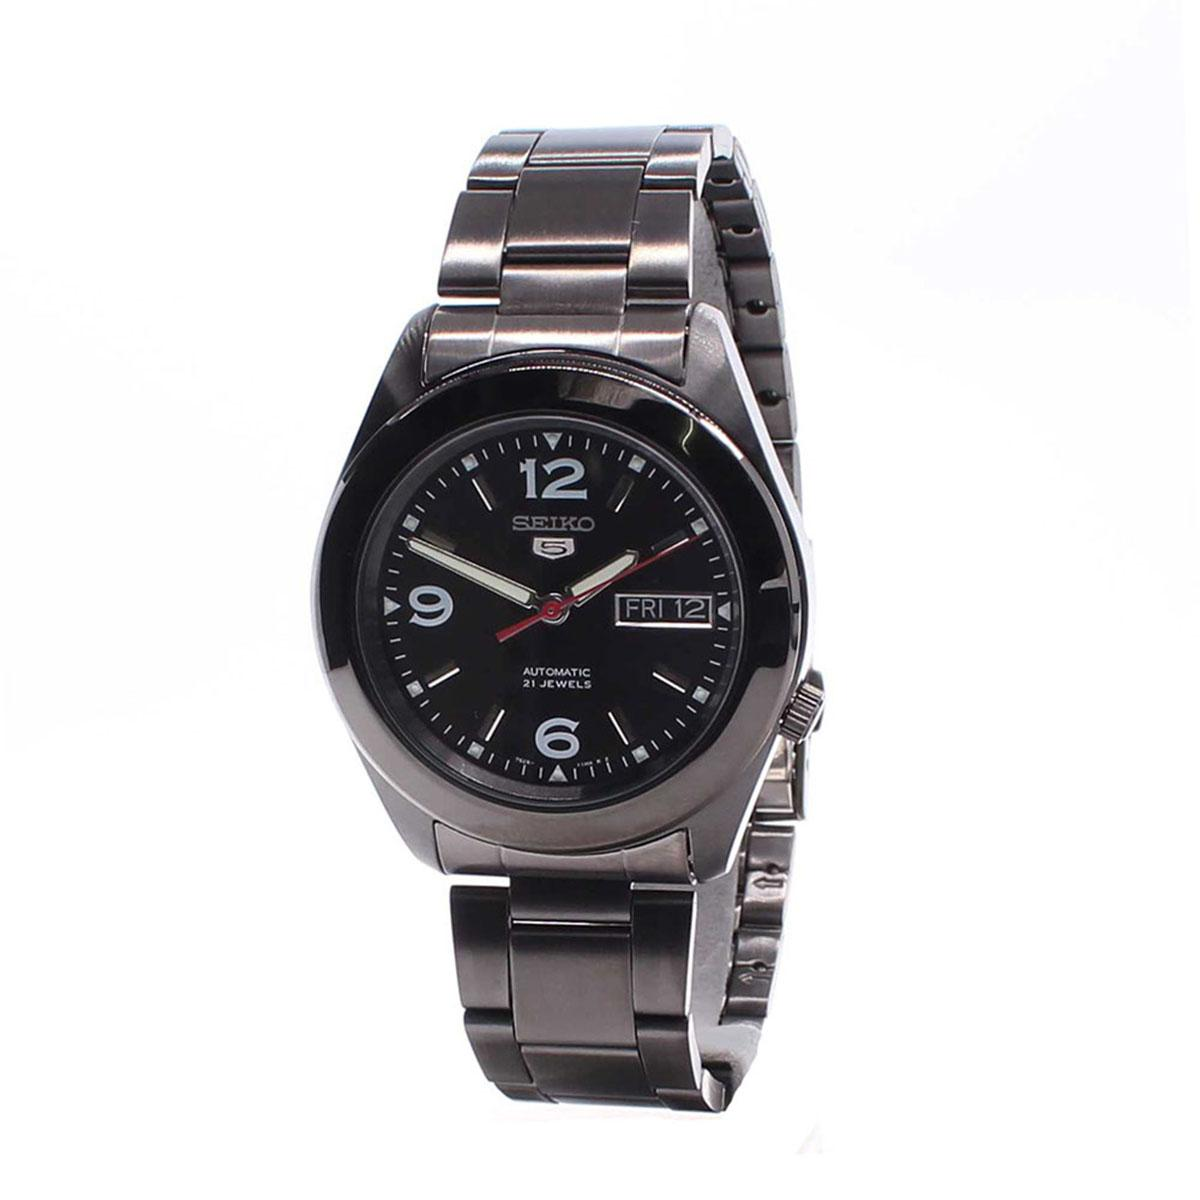 Seiko Watch 5 Automatic Black Stainless-Steel Case Stainless-Steel Bracelet Mens SNKM79K1